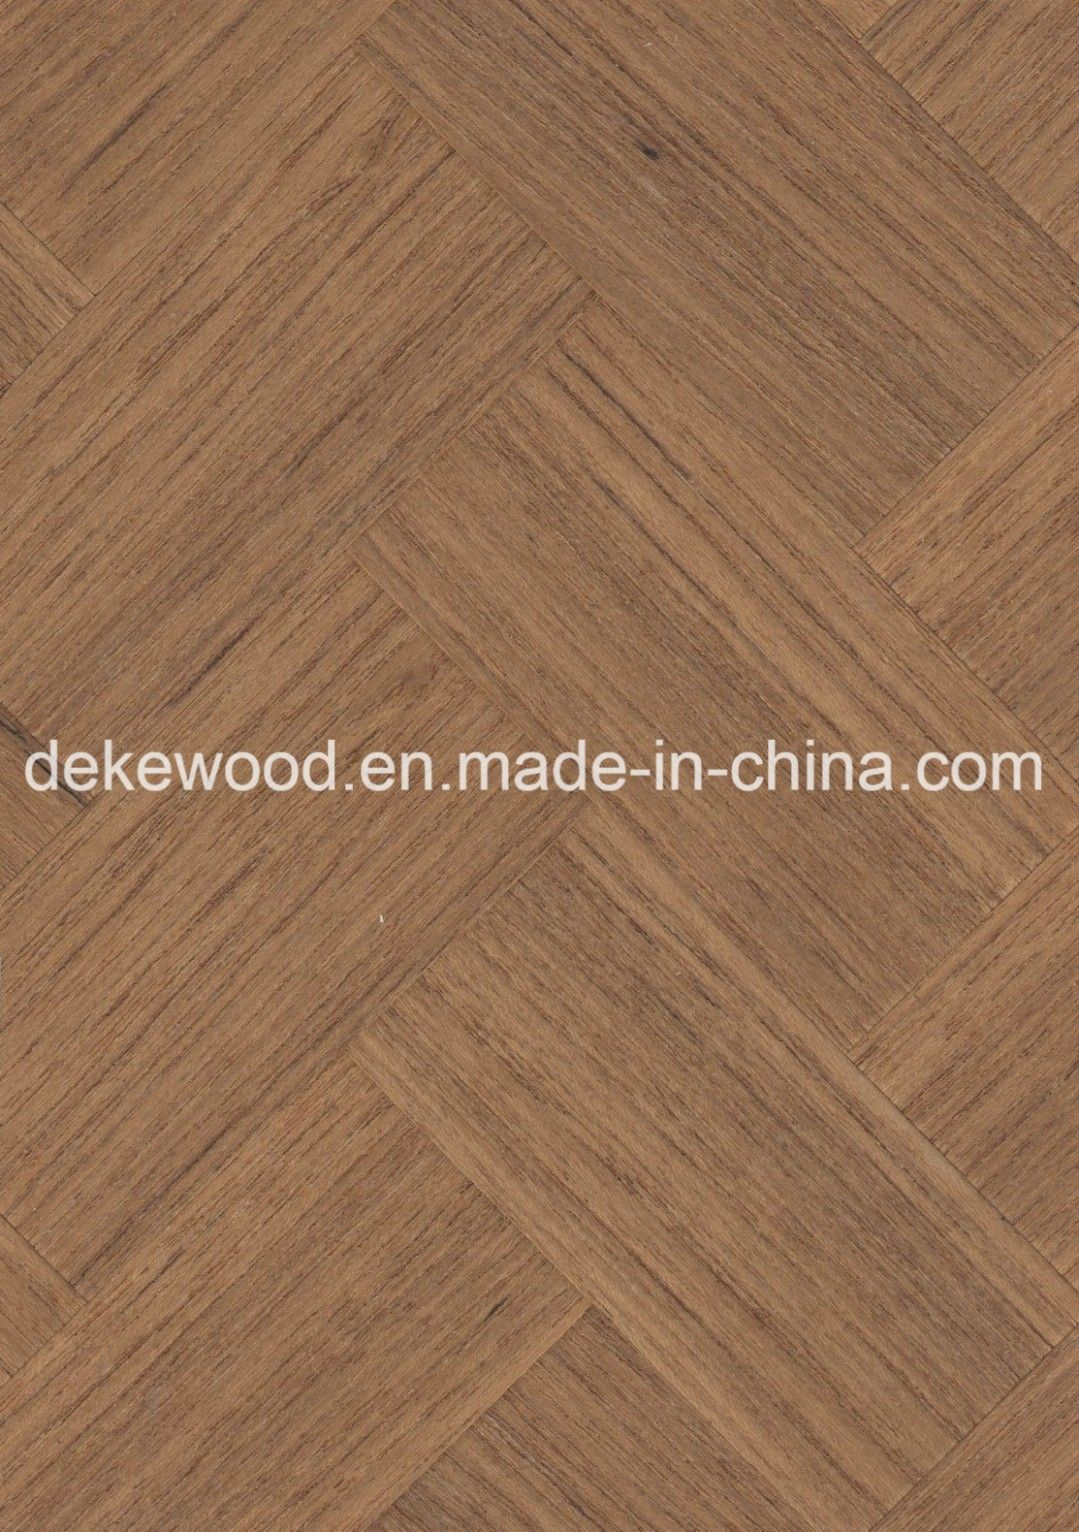 Teak Wood Hs Code Teak Wood Hs Code Teak Wood Hs Code Welcome For You To My Blog In This Particular Time Period I A Teak Wood Teak Wood